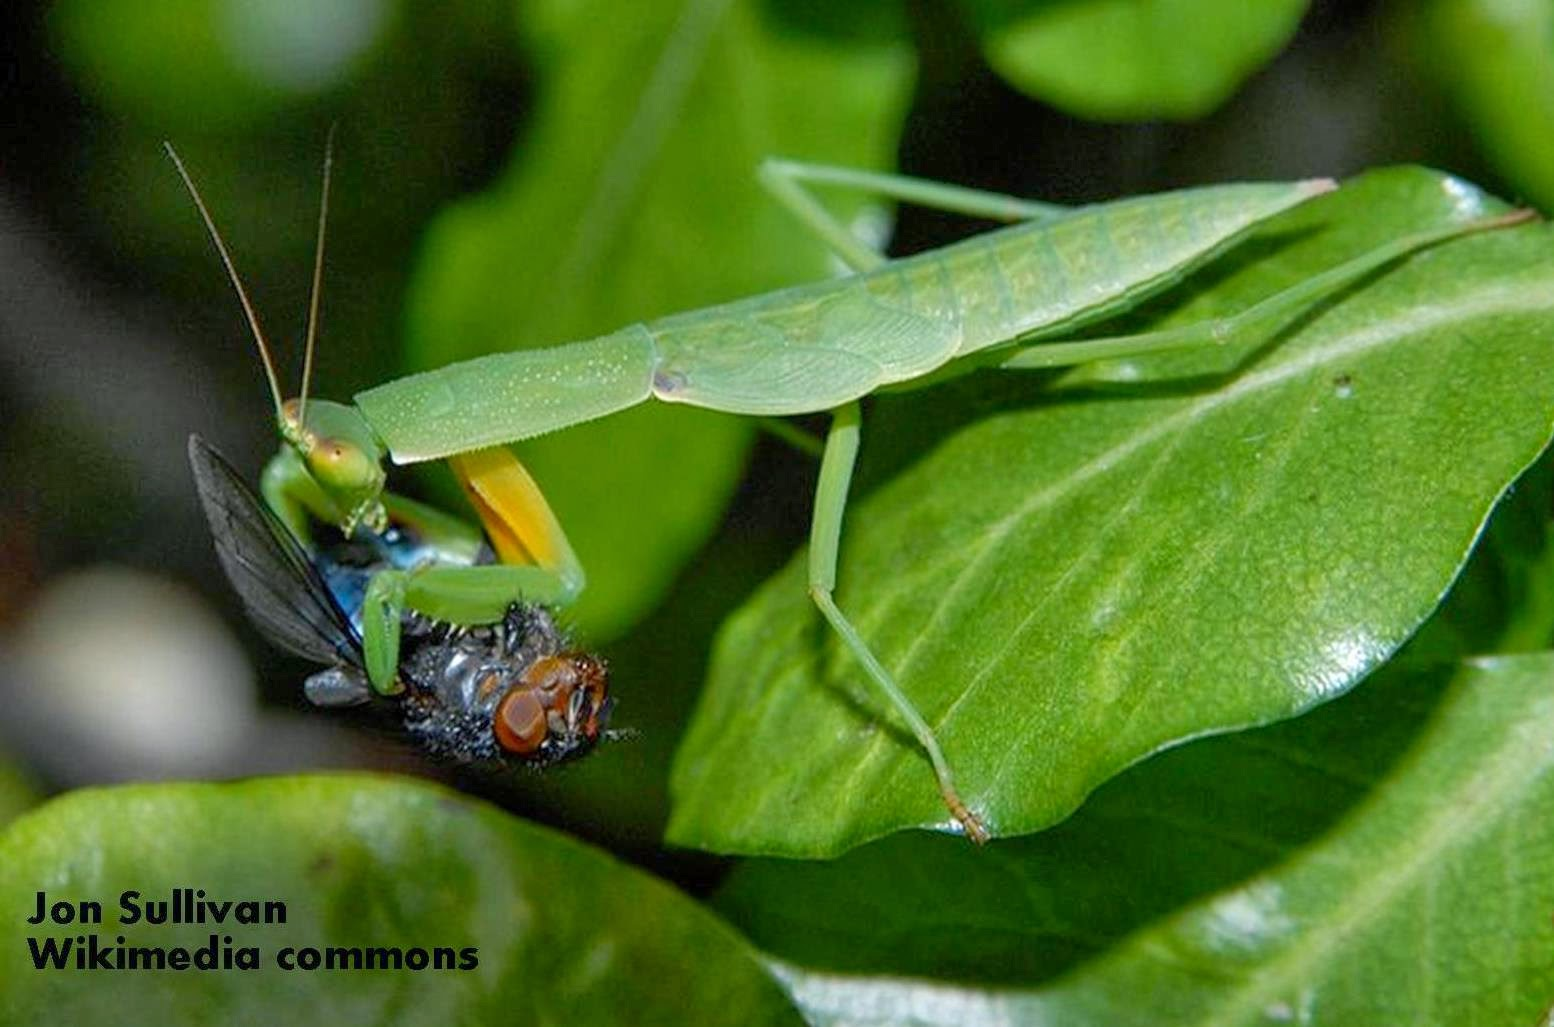 an introduction to the mantodea also known as the praying mantis Abstract the orchid mantis, hymenopus coronatus (insecta: mantodea), is renown for its visual resemblance to a flower blossom it has been hypothesised that the 'flowerlike' orchid mantis is.